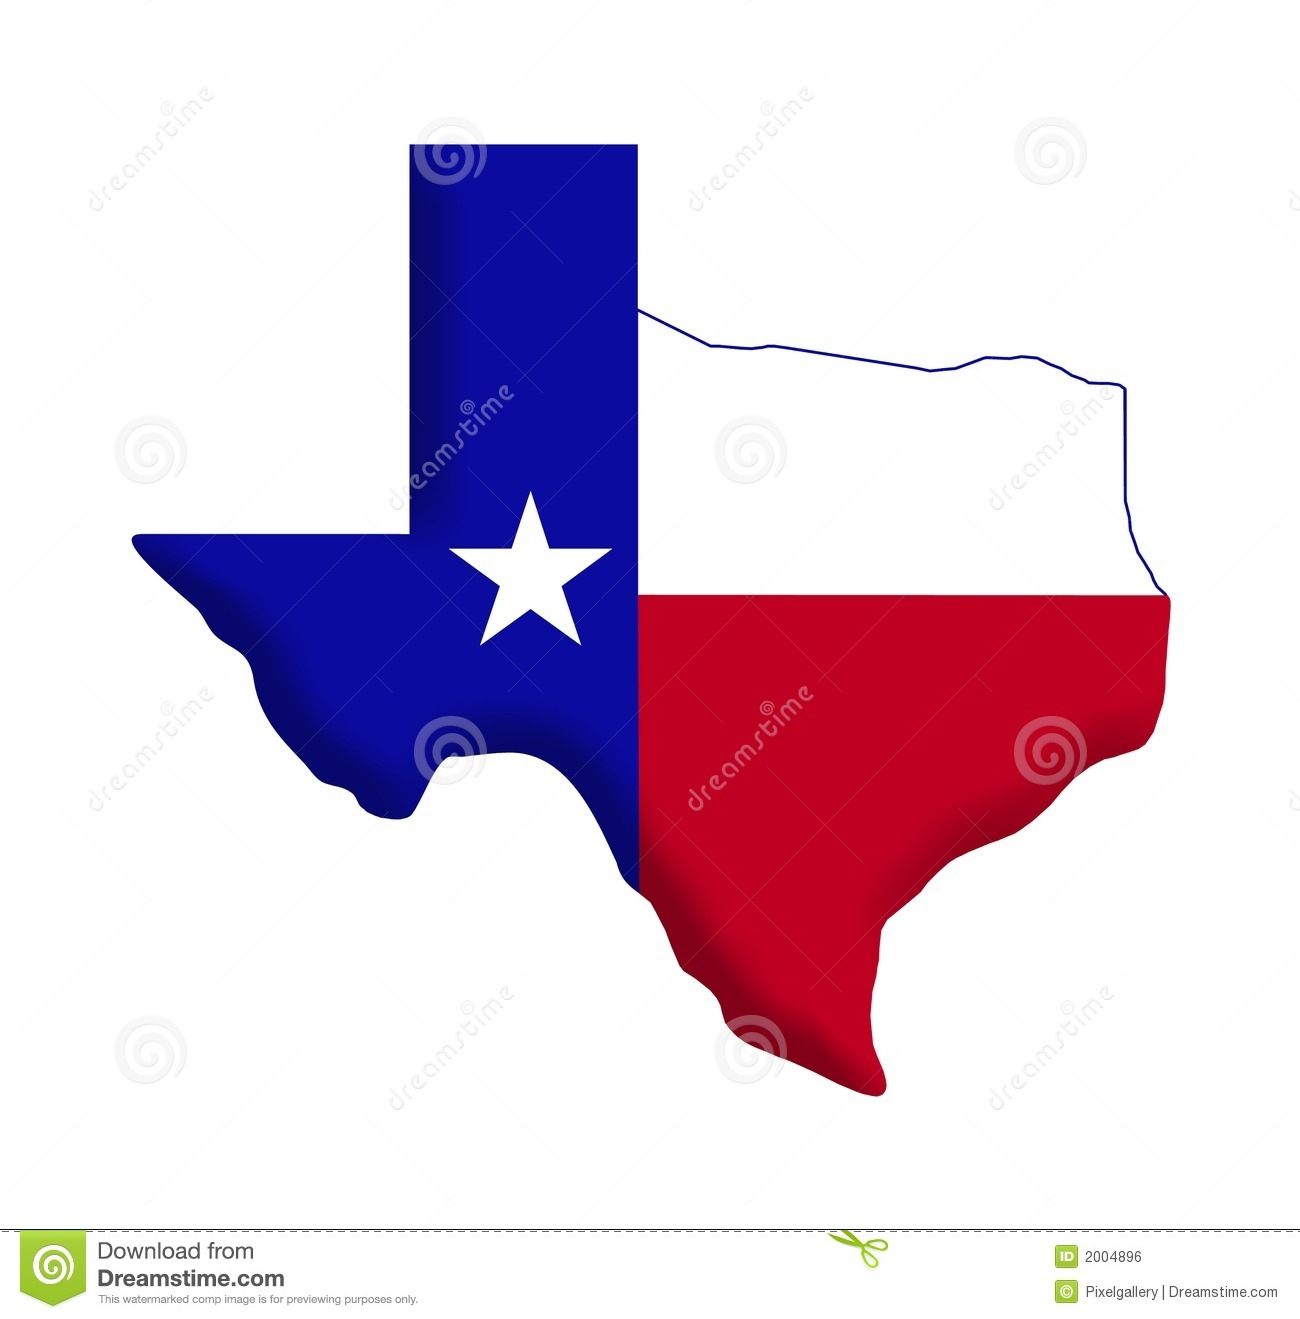 Of Texas Star And Colors Of Texas Flag I-Of Texas Star And Colors Of Texas Flag Incorporated Inside Map Texas-4